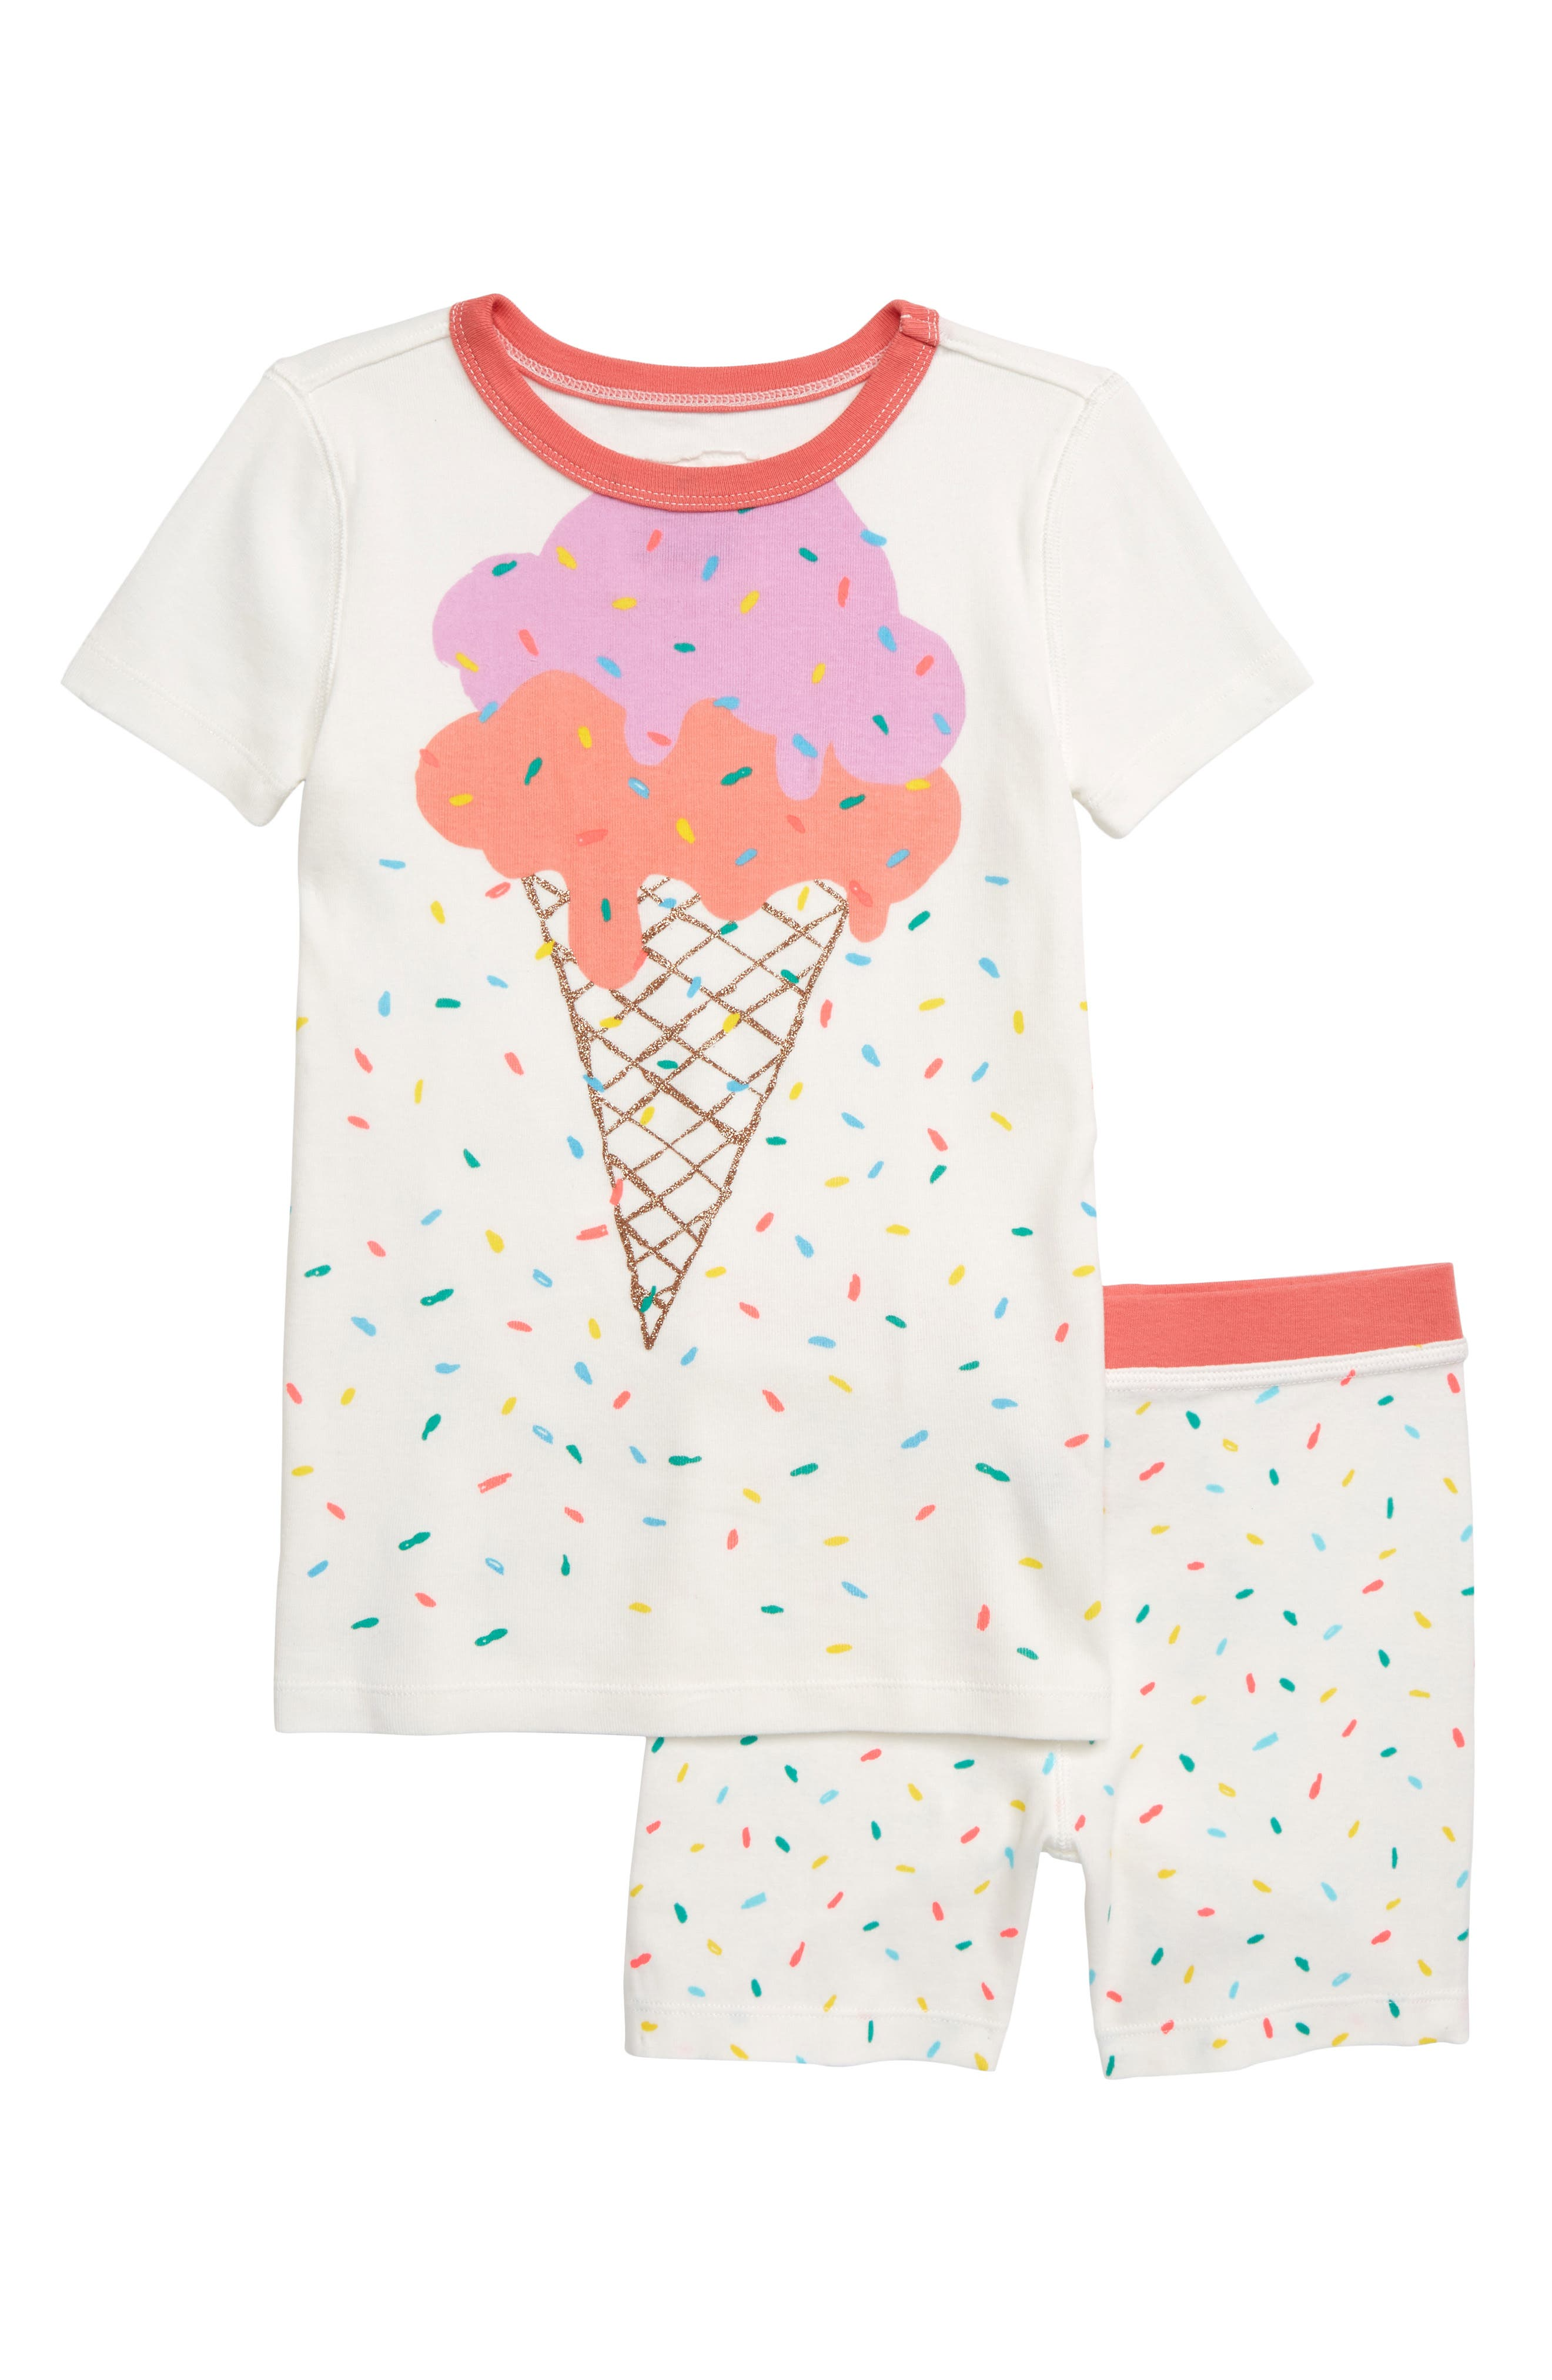 Toddler Girls Crewcuts By Jcrew Sprinkles Fitted TwoPiece Short Pajamas Size 2T  Ivory